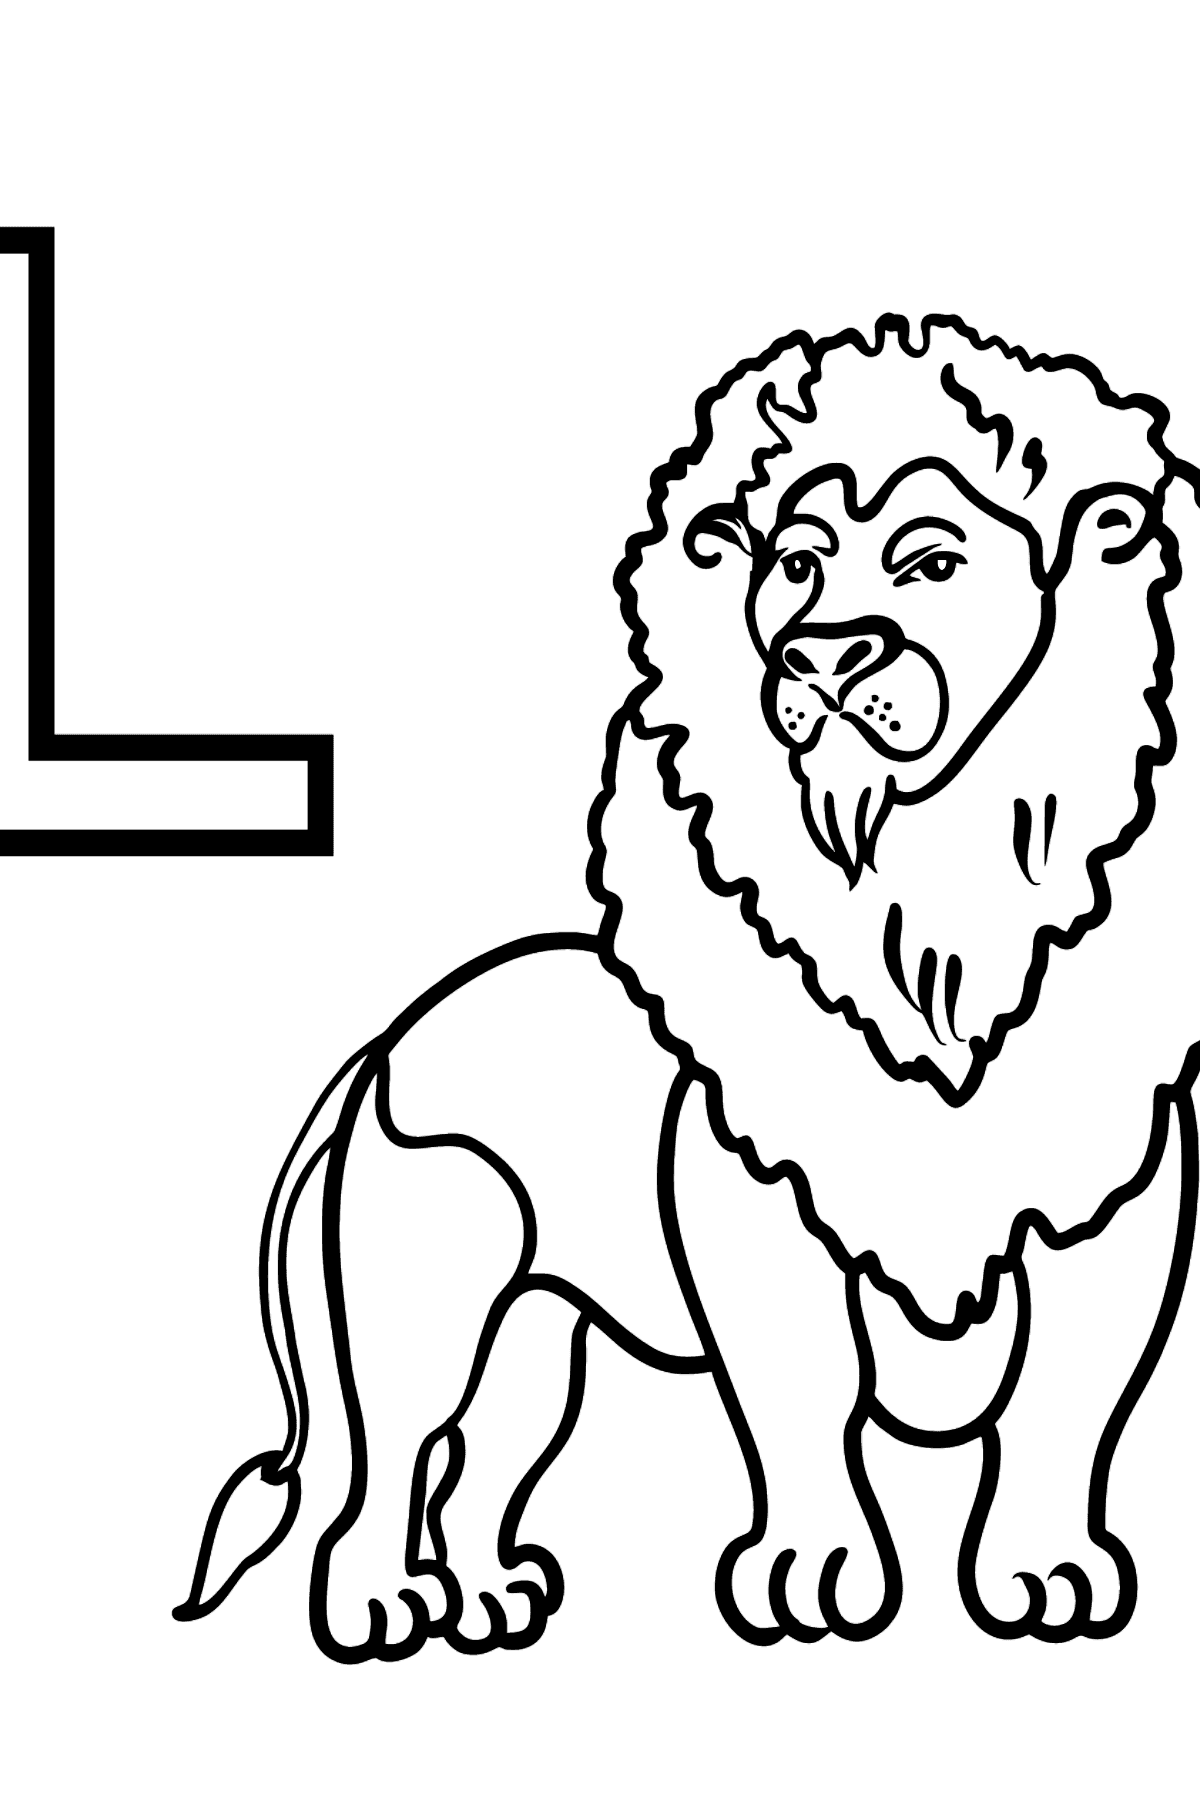 French Letter L coloring pages - LION - Coloring Pages for Kids